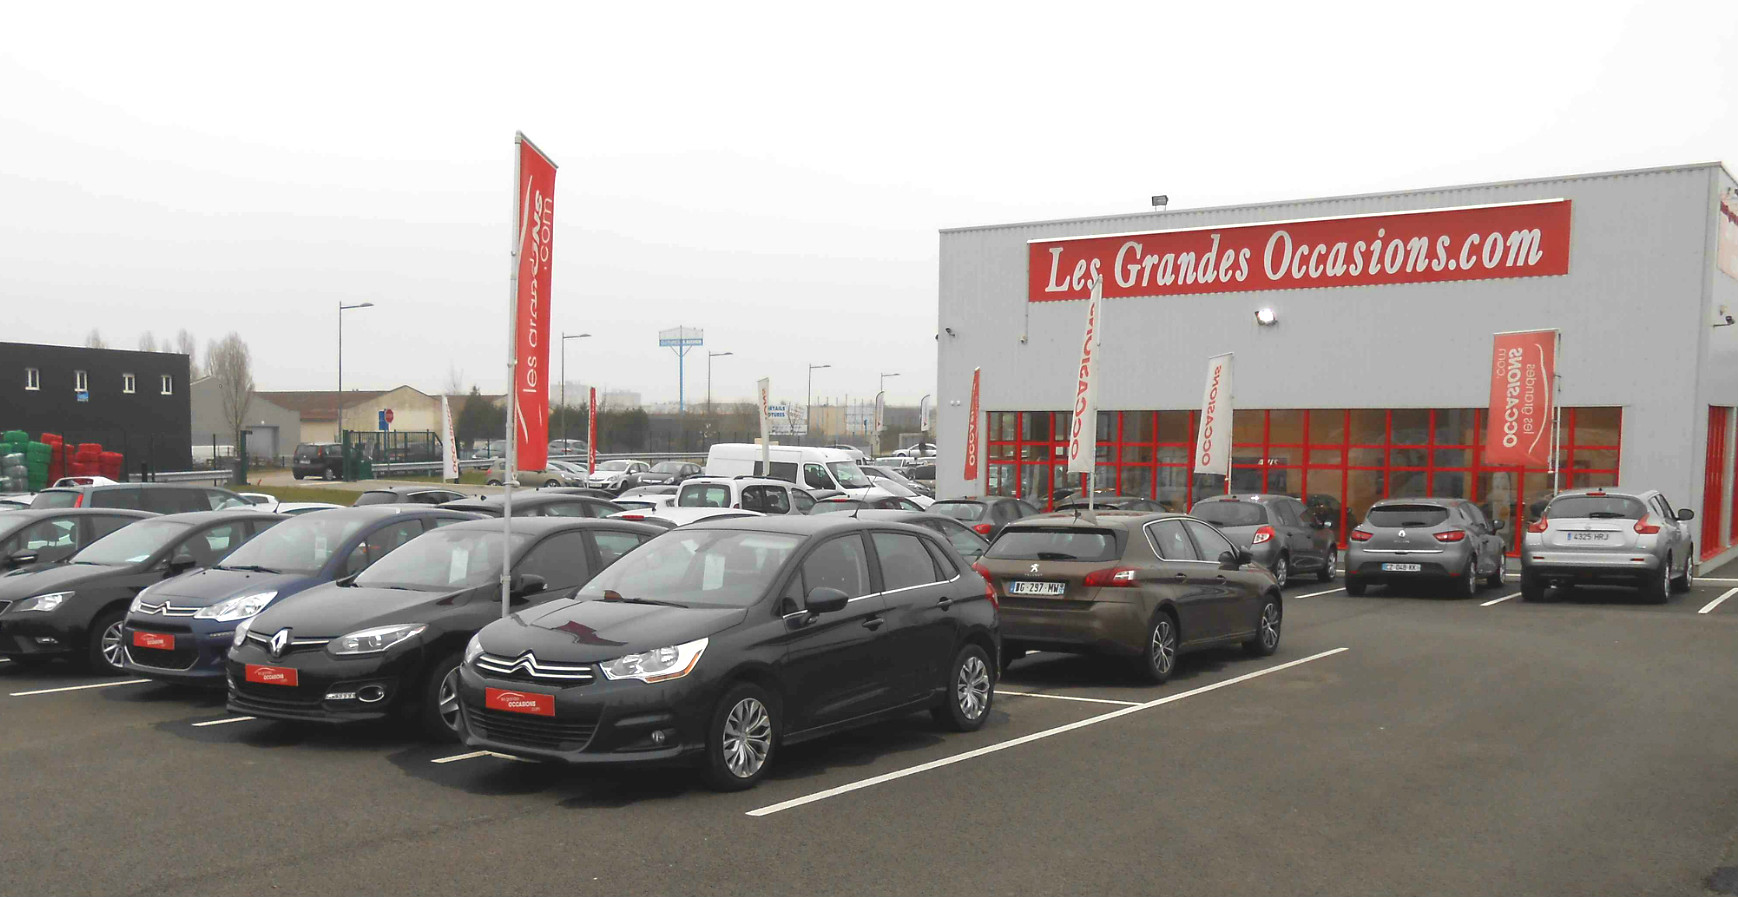 LES GRANDES OCCASIONS.COM TROYES